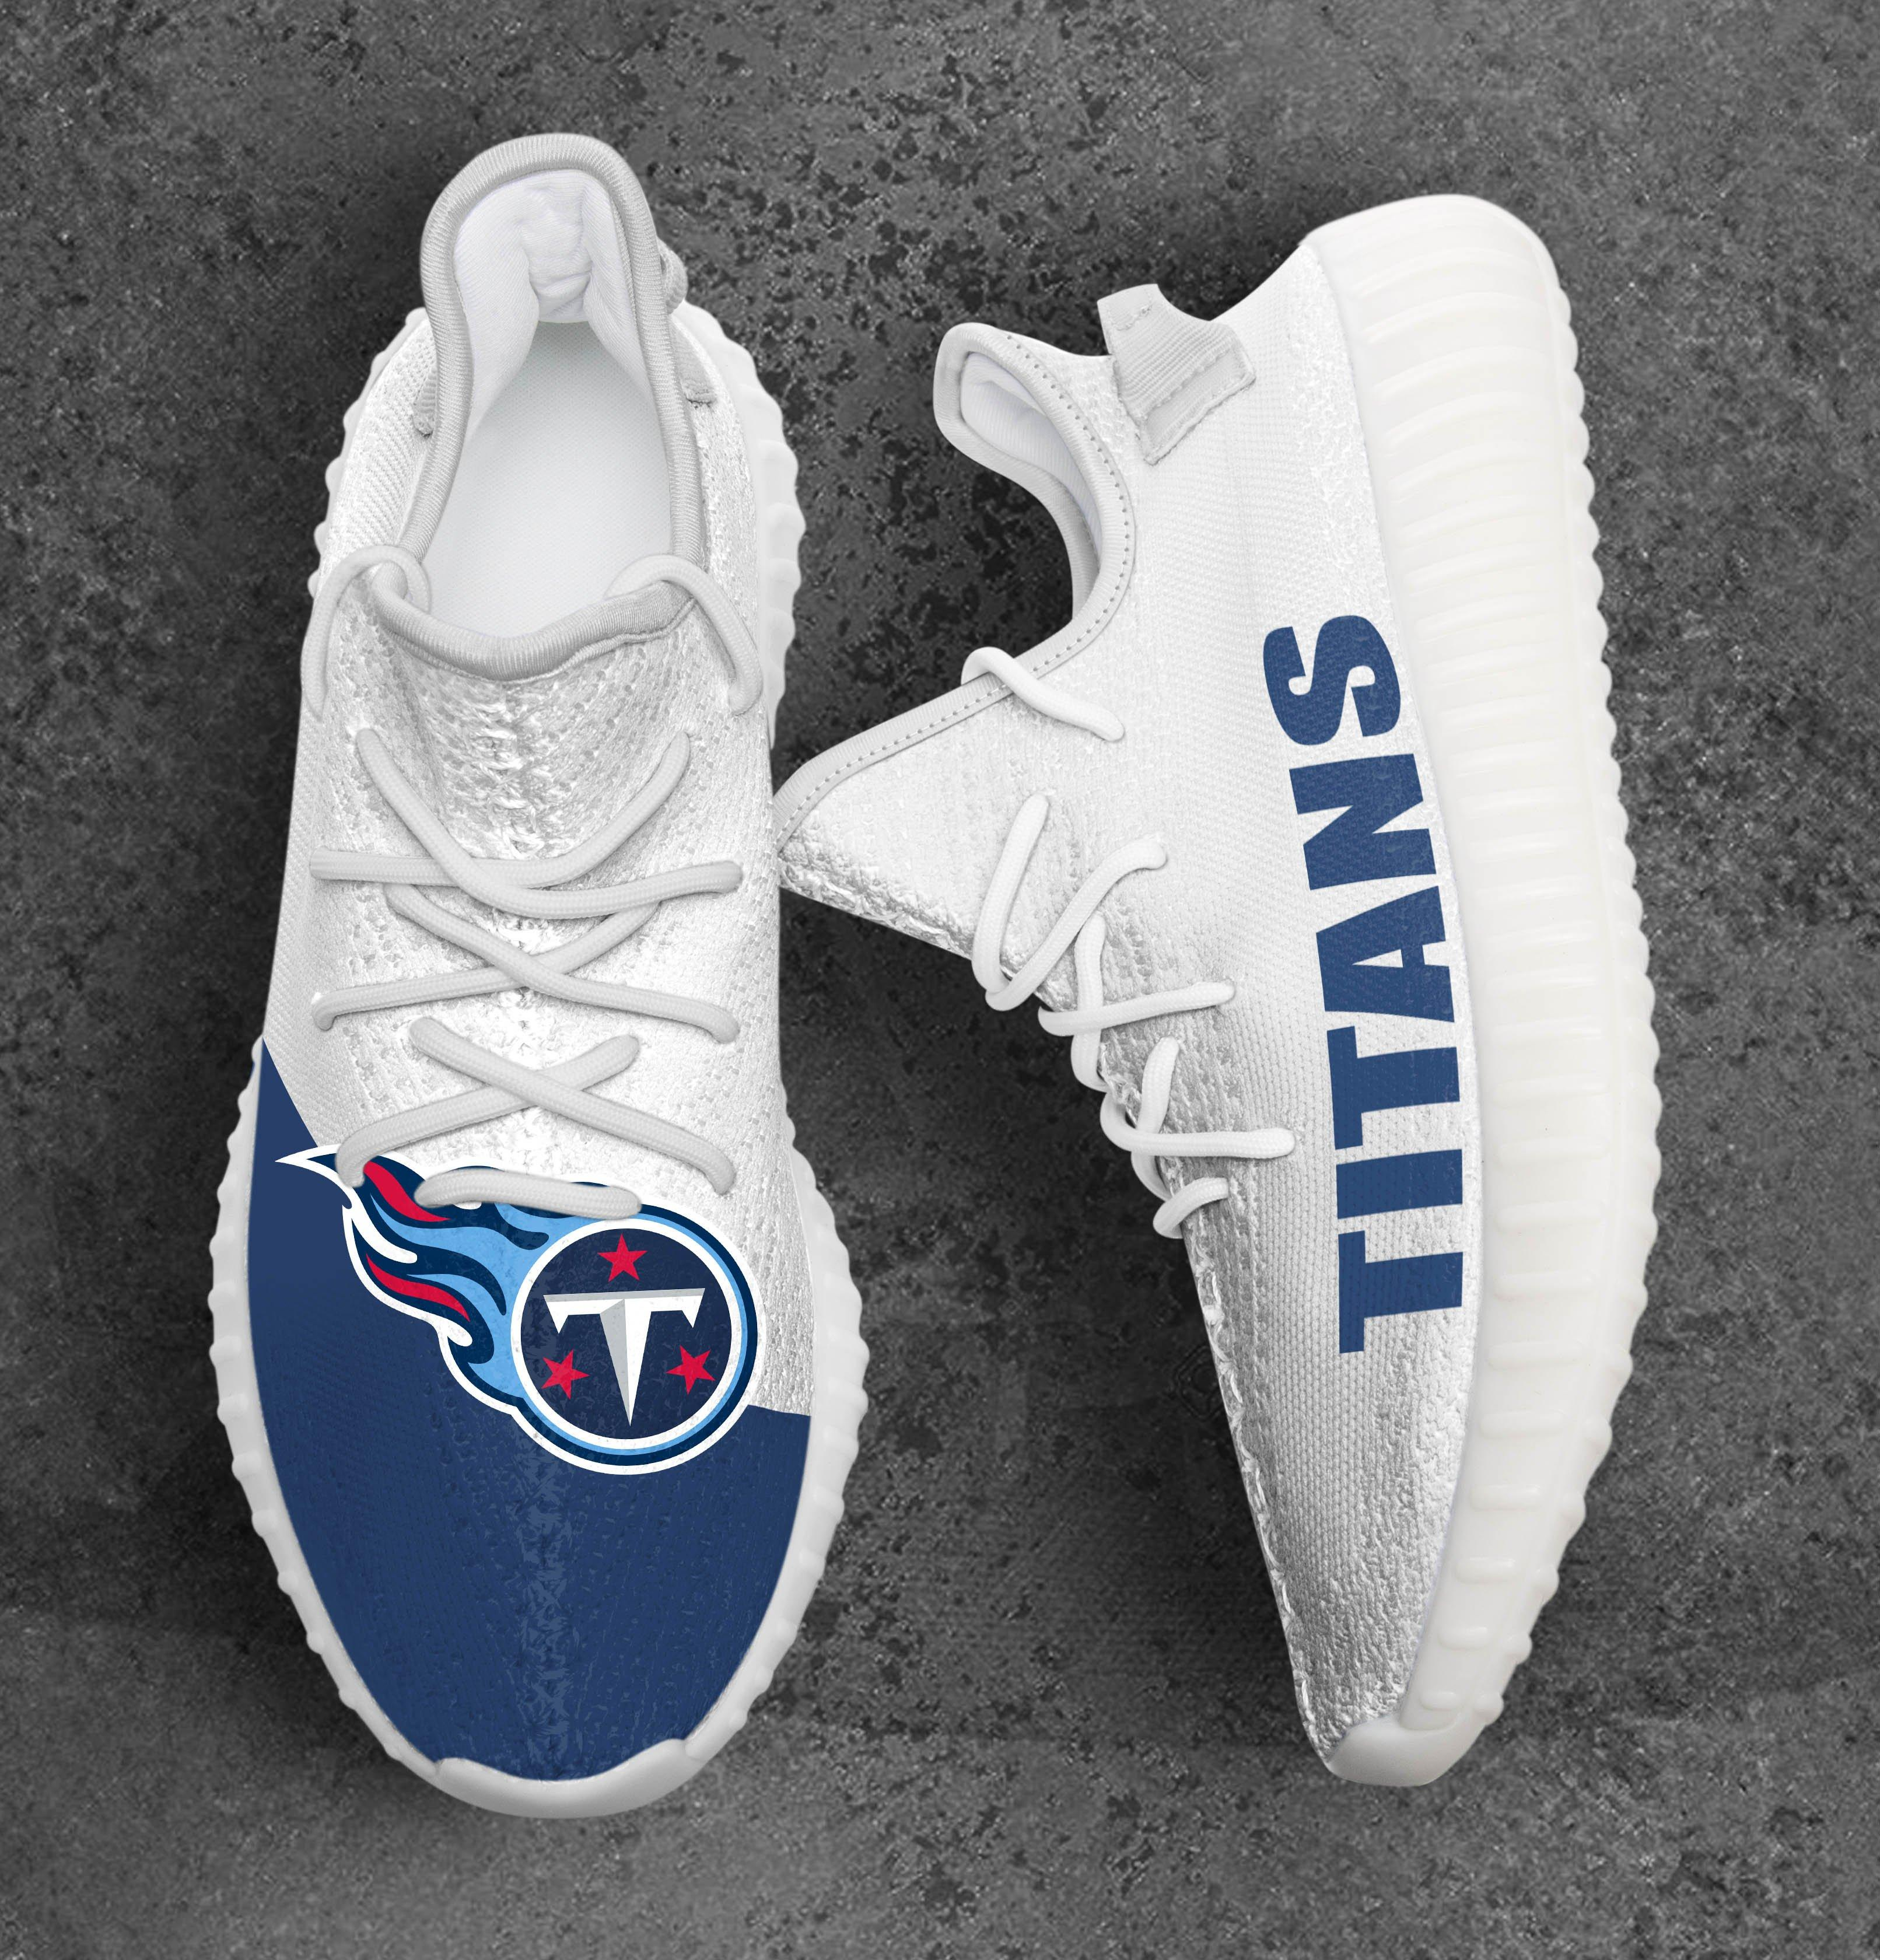 Tennessee Titans NFL Sport Teams Adidas Yeezy Boost 350 V2 Top Branding Trends